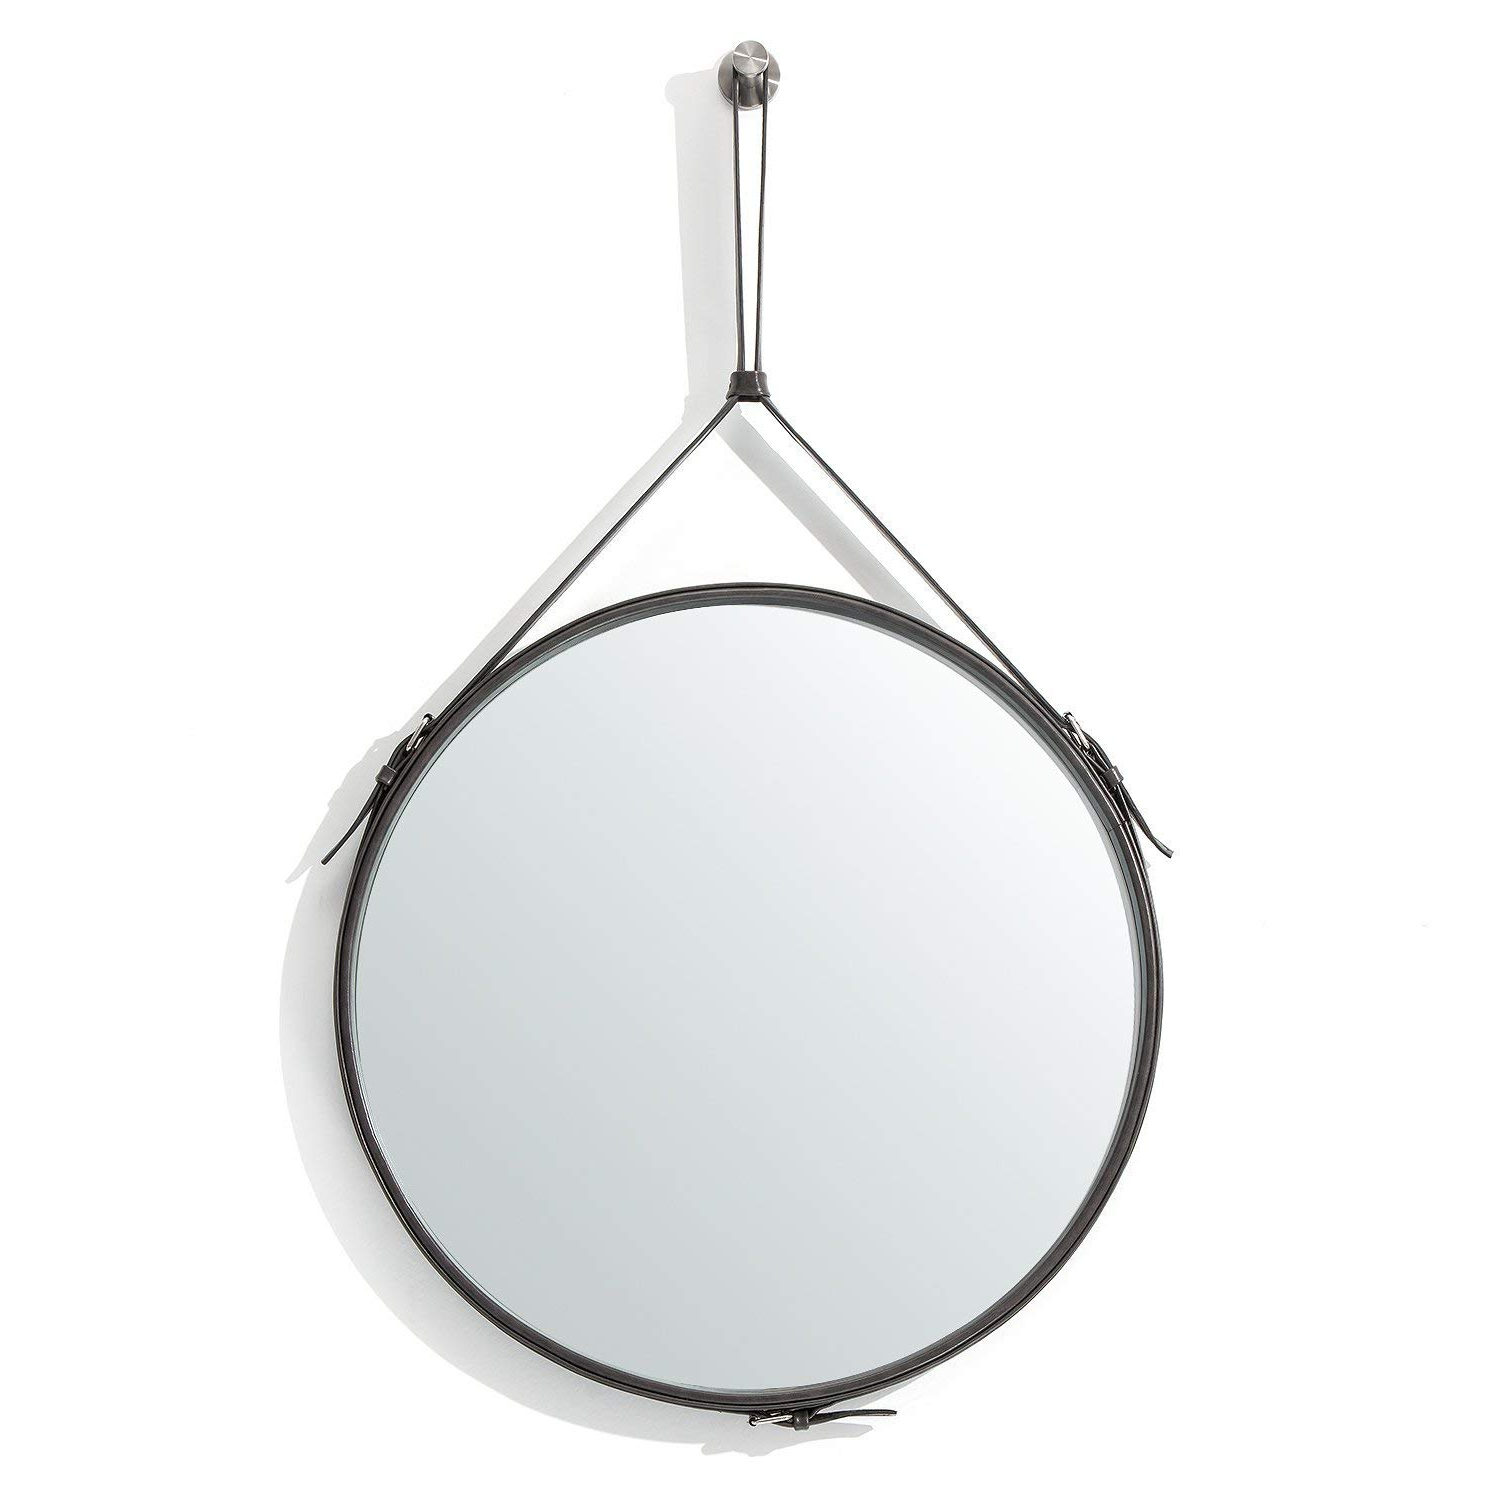 Most Popular Kentwood Round Wall Mirrors Throughout Buy Decorative Wall Mirror Round Shape Kentwood Collection Framed (View 9 of 20)